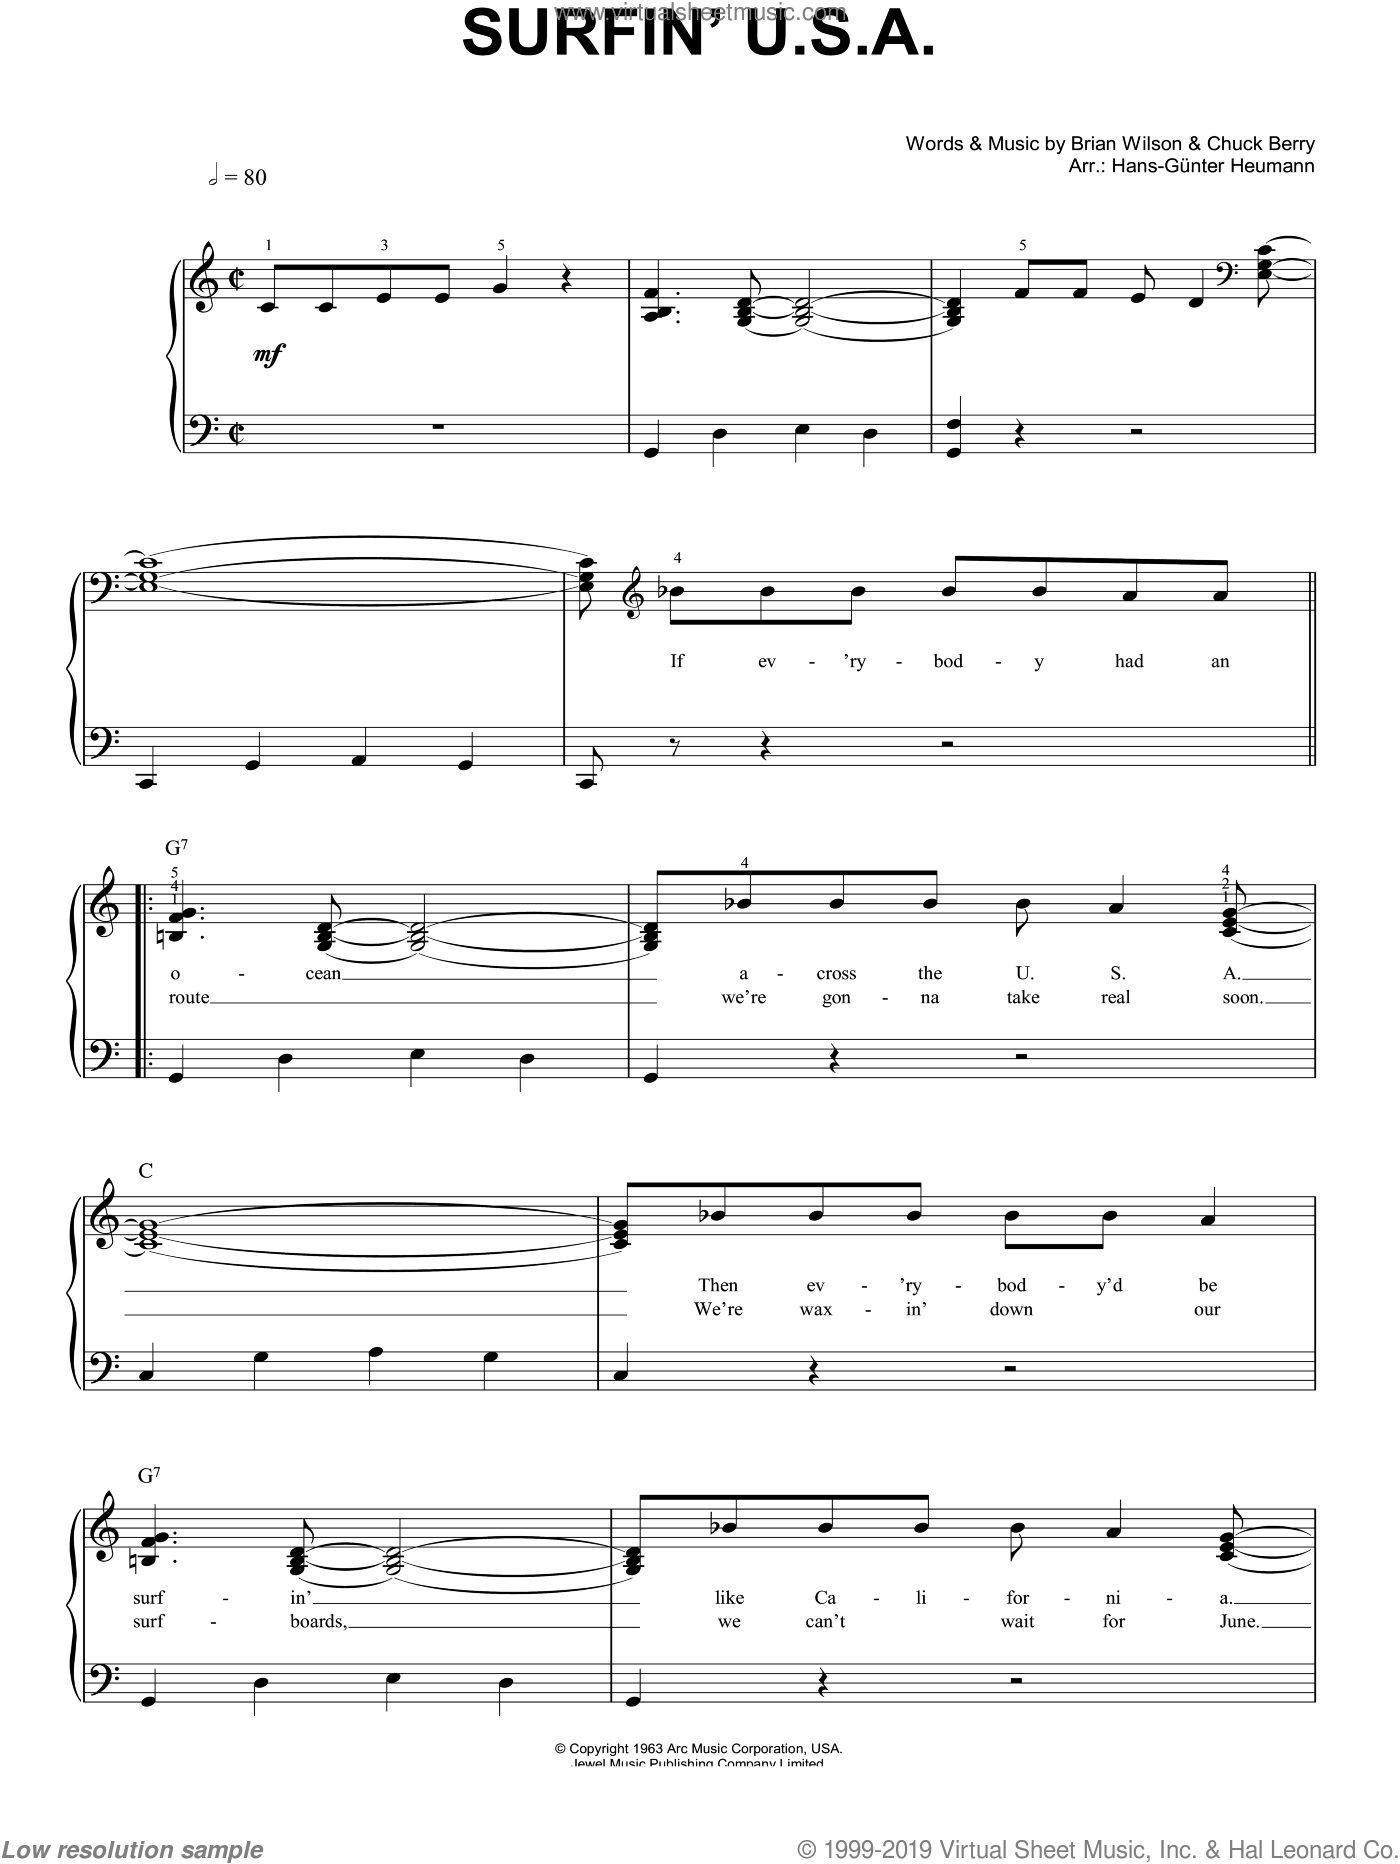 Surfin' U.S.A. sheet music for piano solo by The Beach Boys, Brian Wilson and Chuck Berry, easy. Score Image Preview.